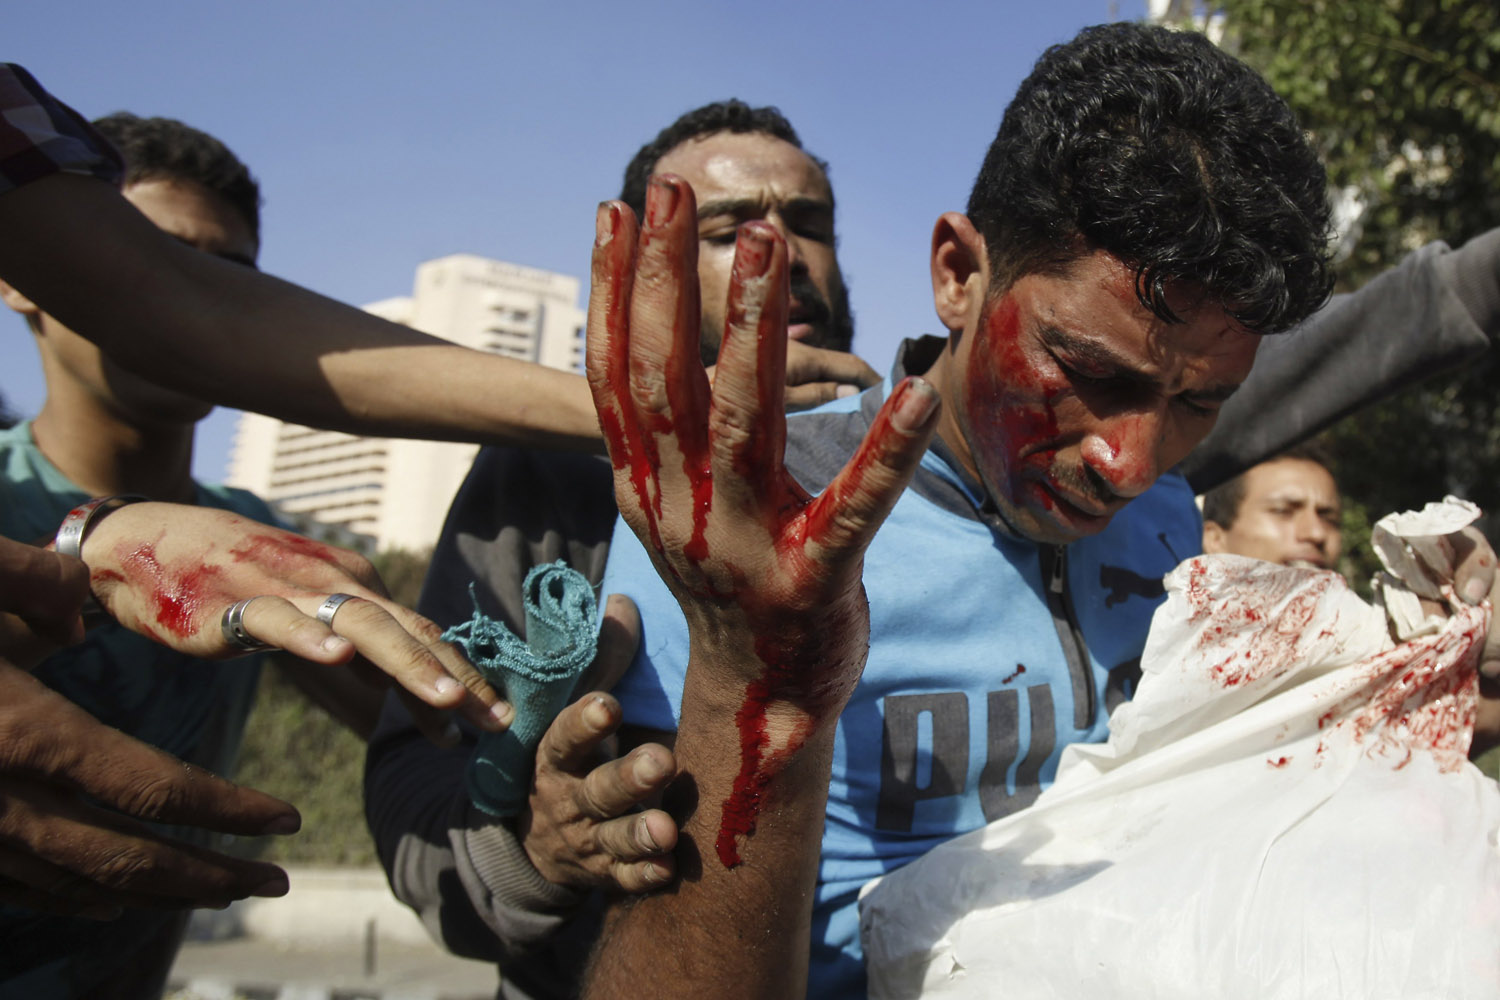 Sept. 14, 2012. Protesters help an injured man, who was hurt during clashes, along a road leading to the U.S. embassy, near Tahrir Square in Cairo.